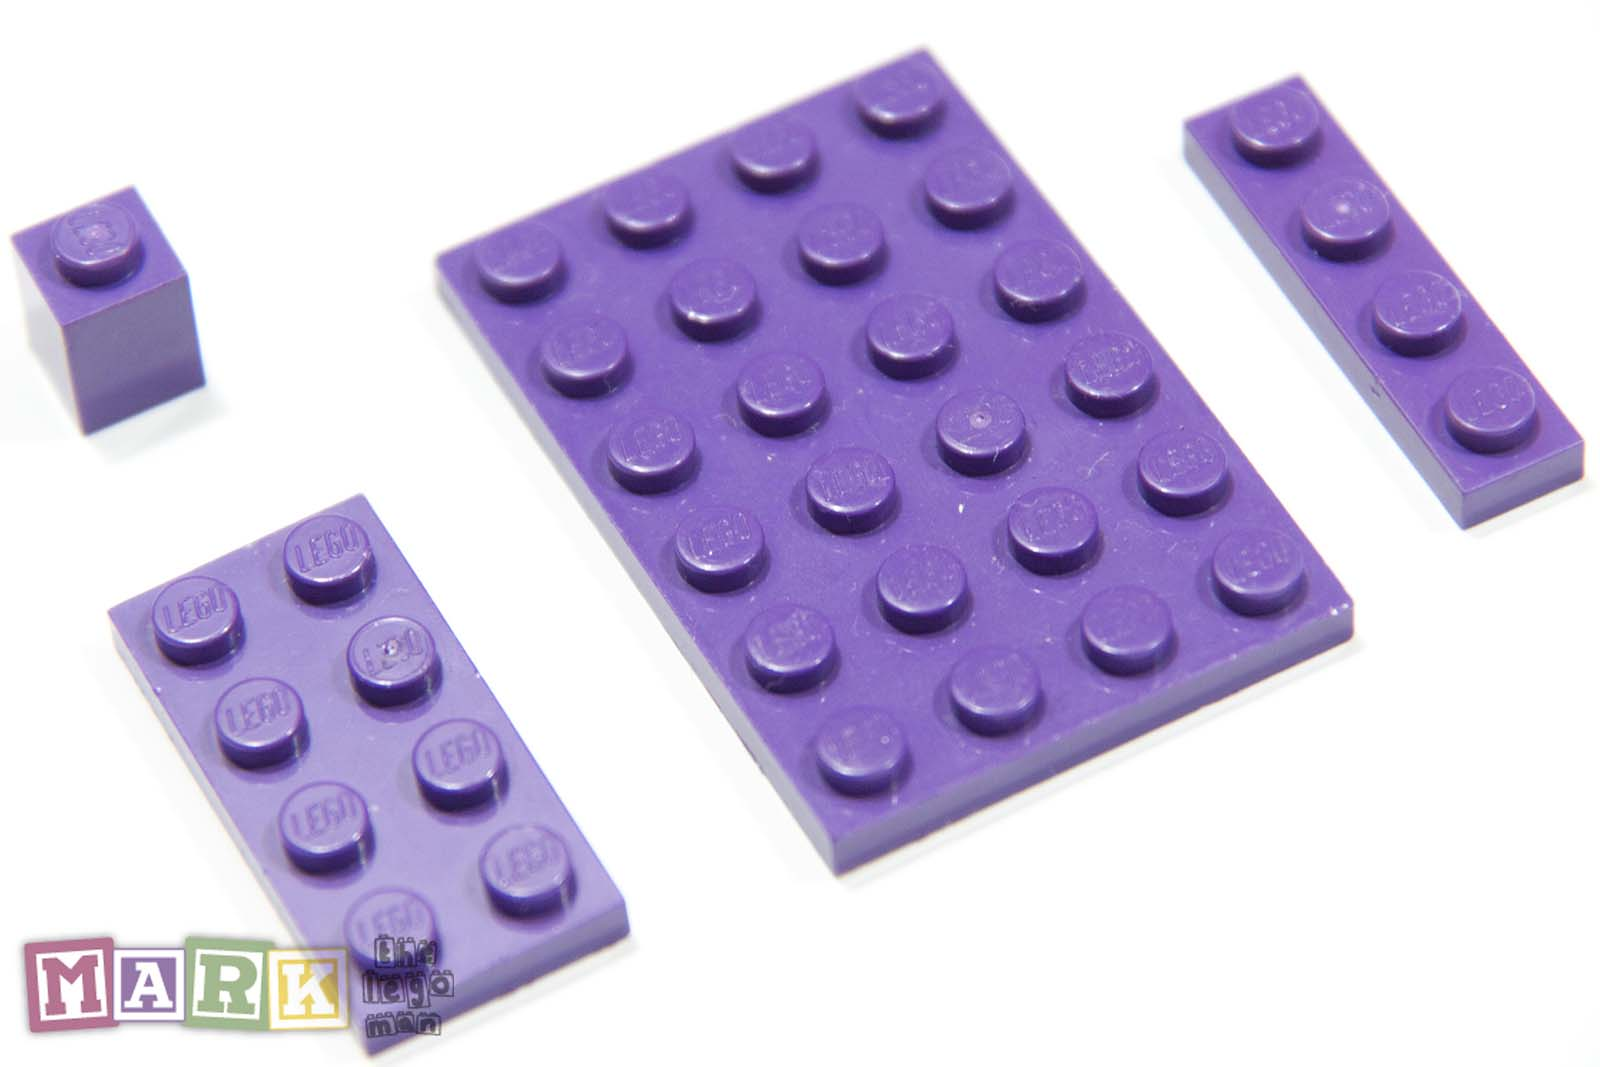 Lego Rare Purple Colour Plates Brick 3032 3020 3710 3005